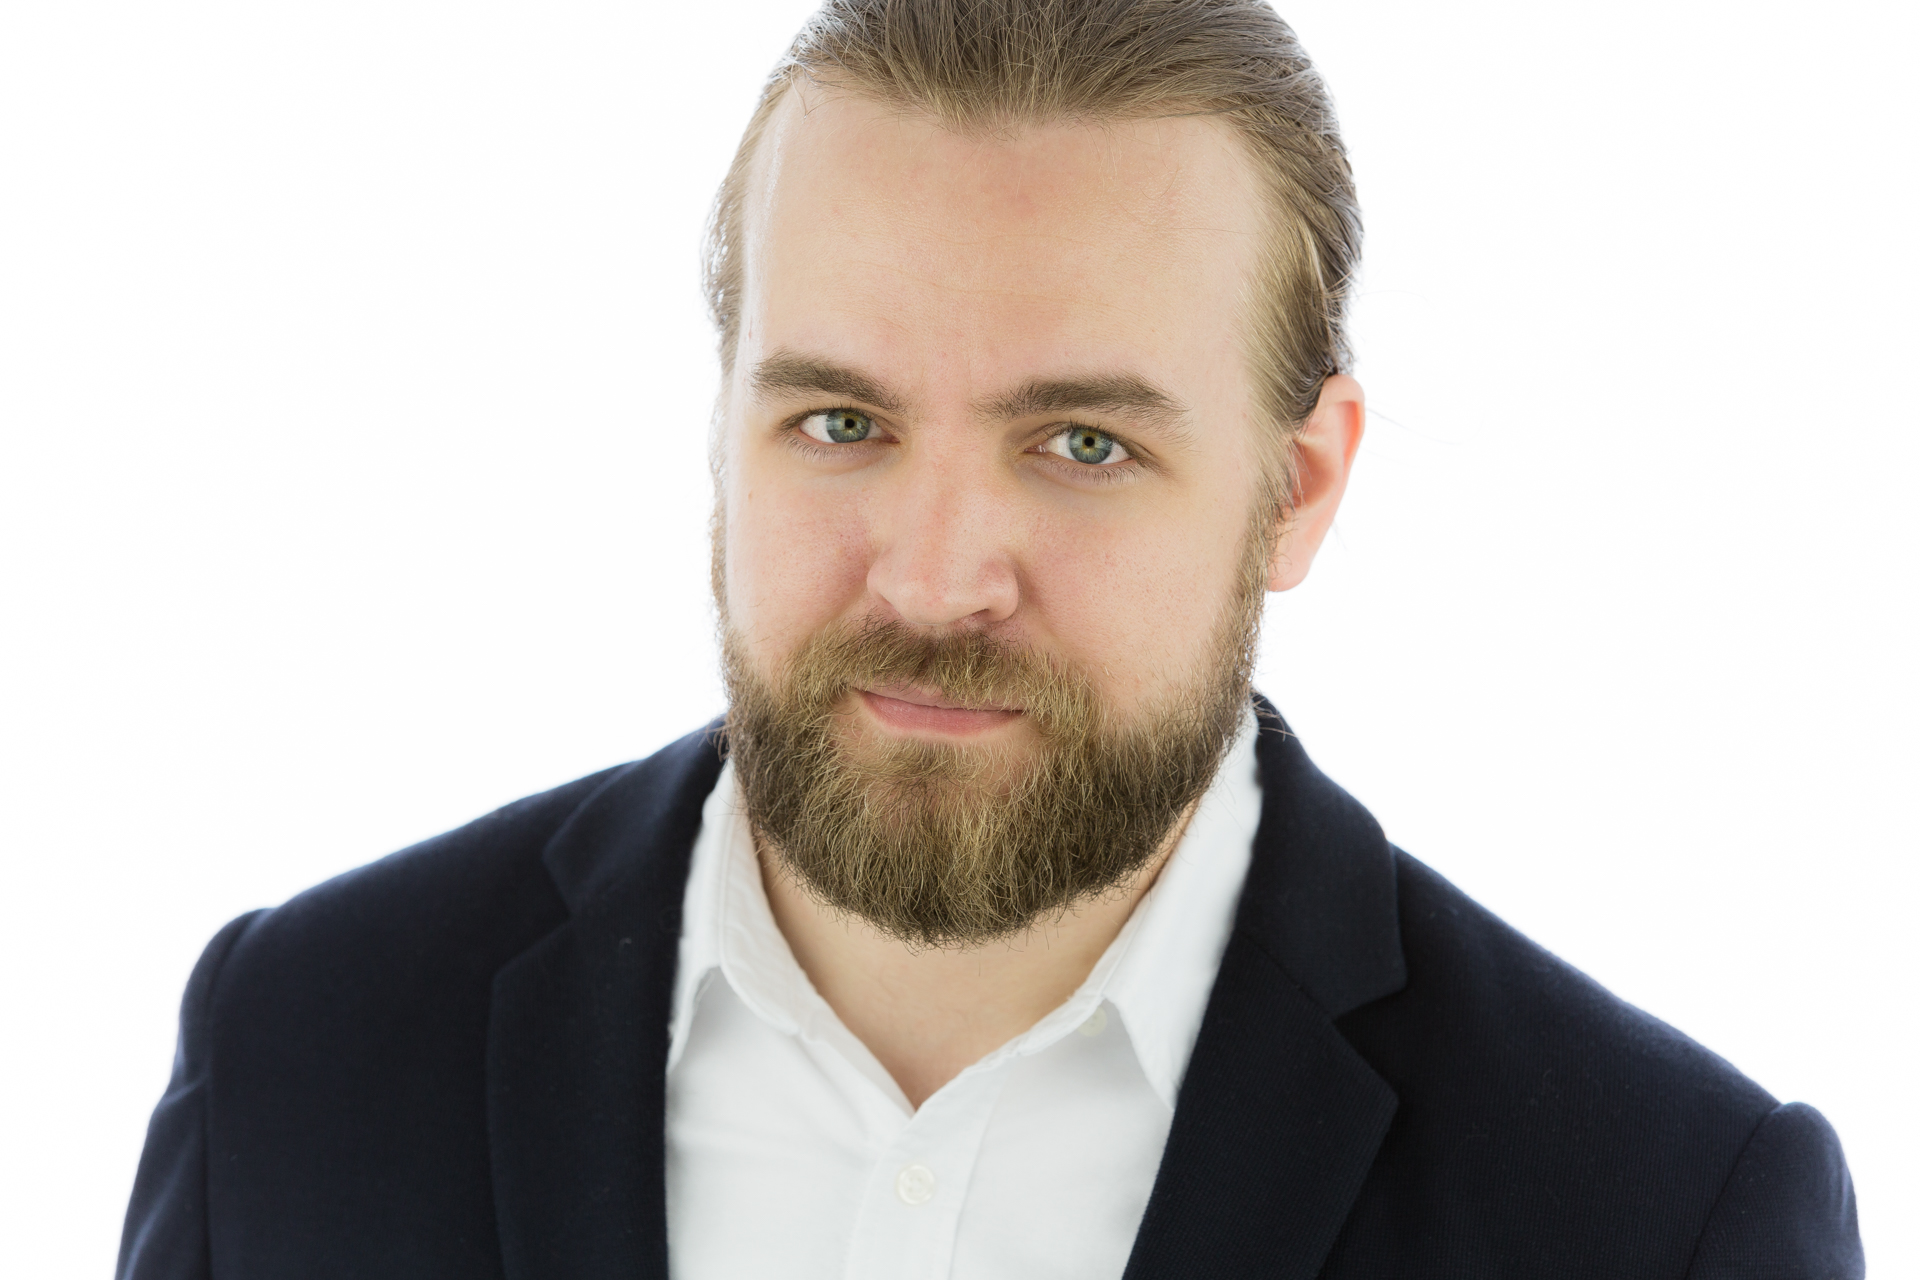 Picture of Jukka Kreander, CQO and Co-Founder at Surgify